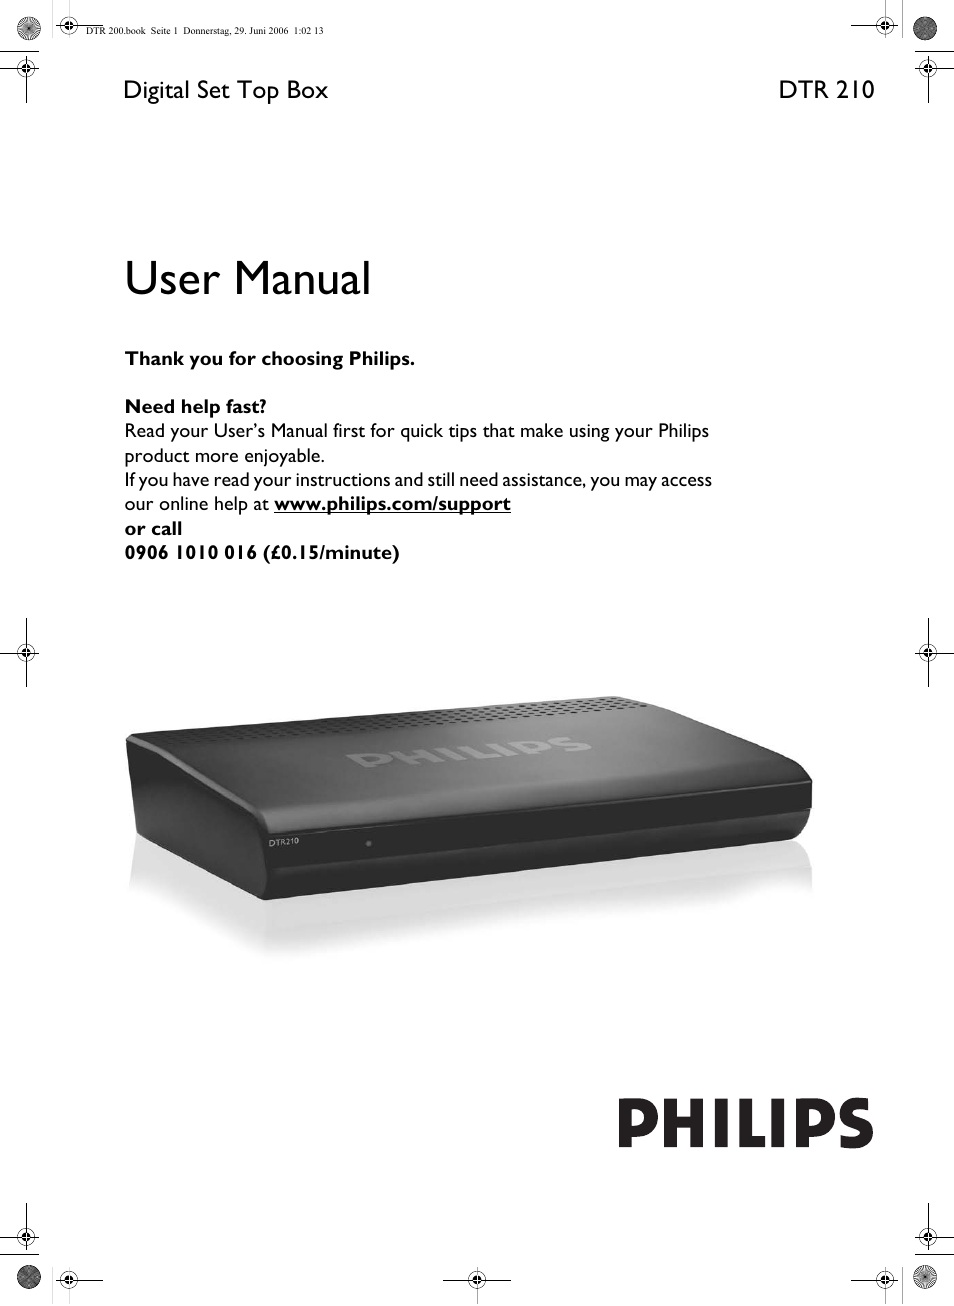 philips dtr210 user manual 20 pages rh manualsdir com Philips Flat TV Manual Philips DVD Player Manual